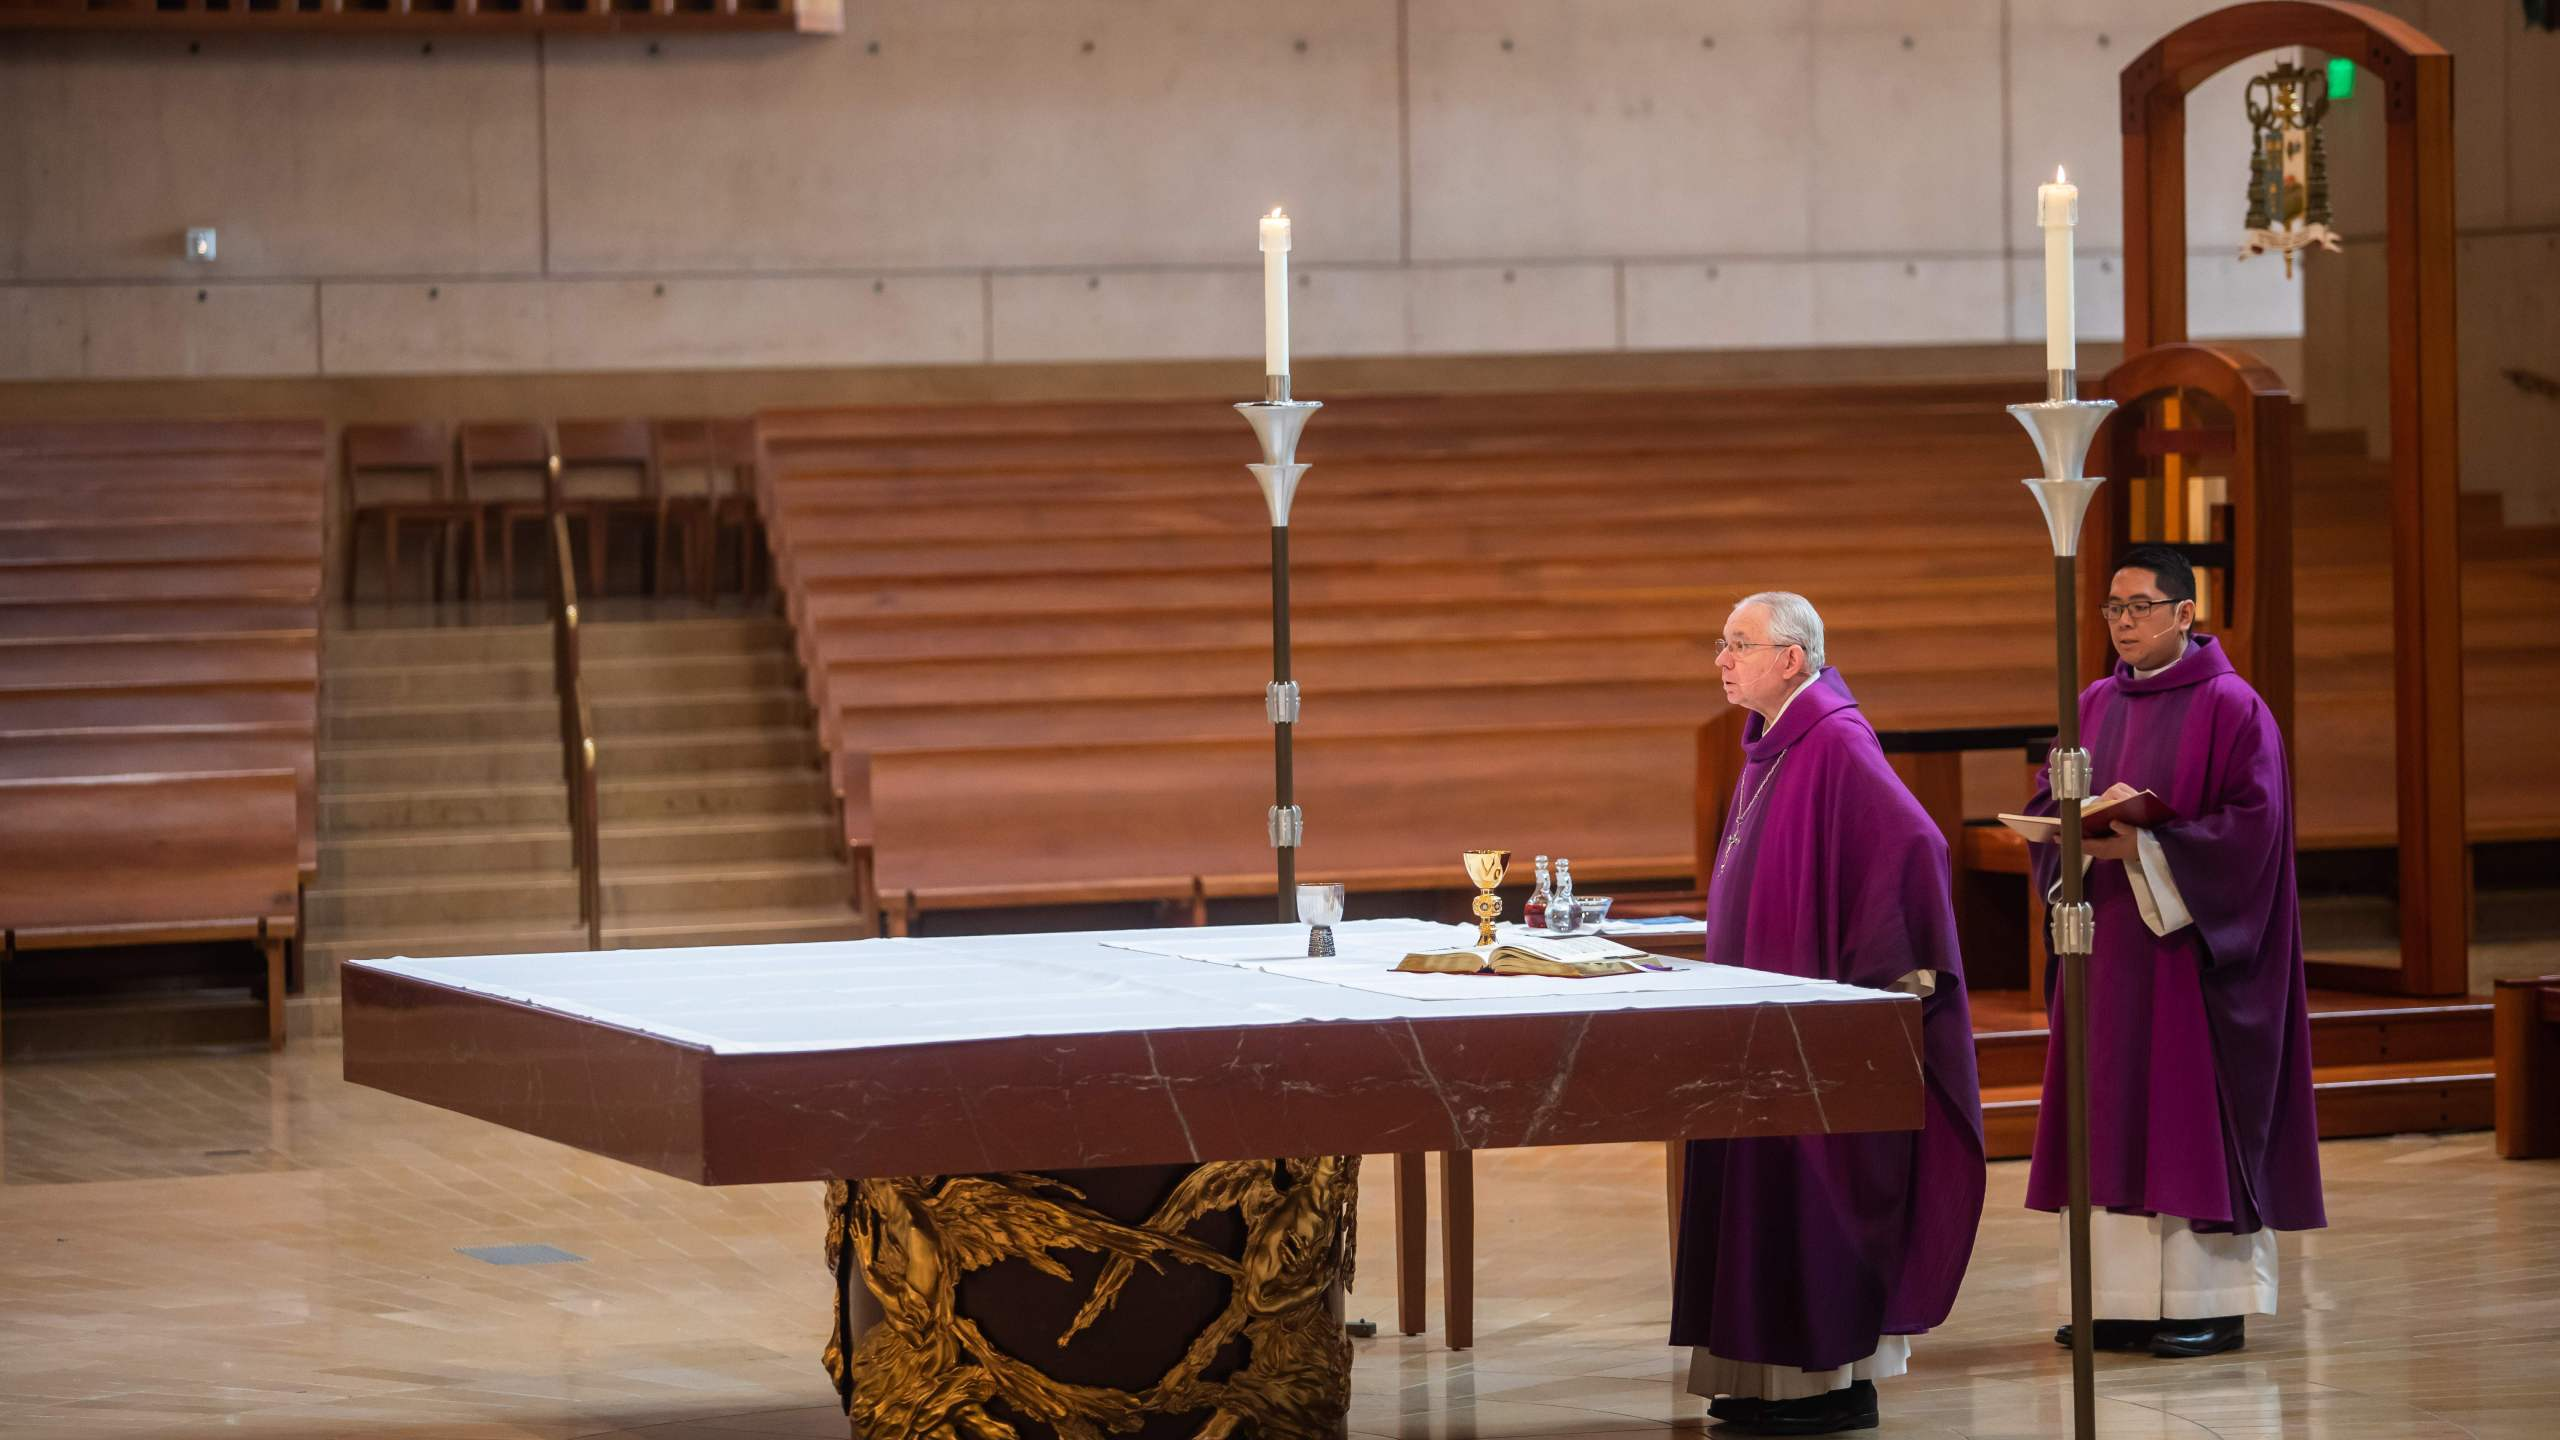 Archbishop Jose H. Gomez leads an online Sunday Service at the Cathedral of Our Lady of the Angels in downtown Los Angeles on March 22, 2020, after the church shut its doors to the public. (Credit: Apu Gomes / AFP / Getty Images)